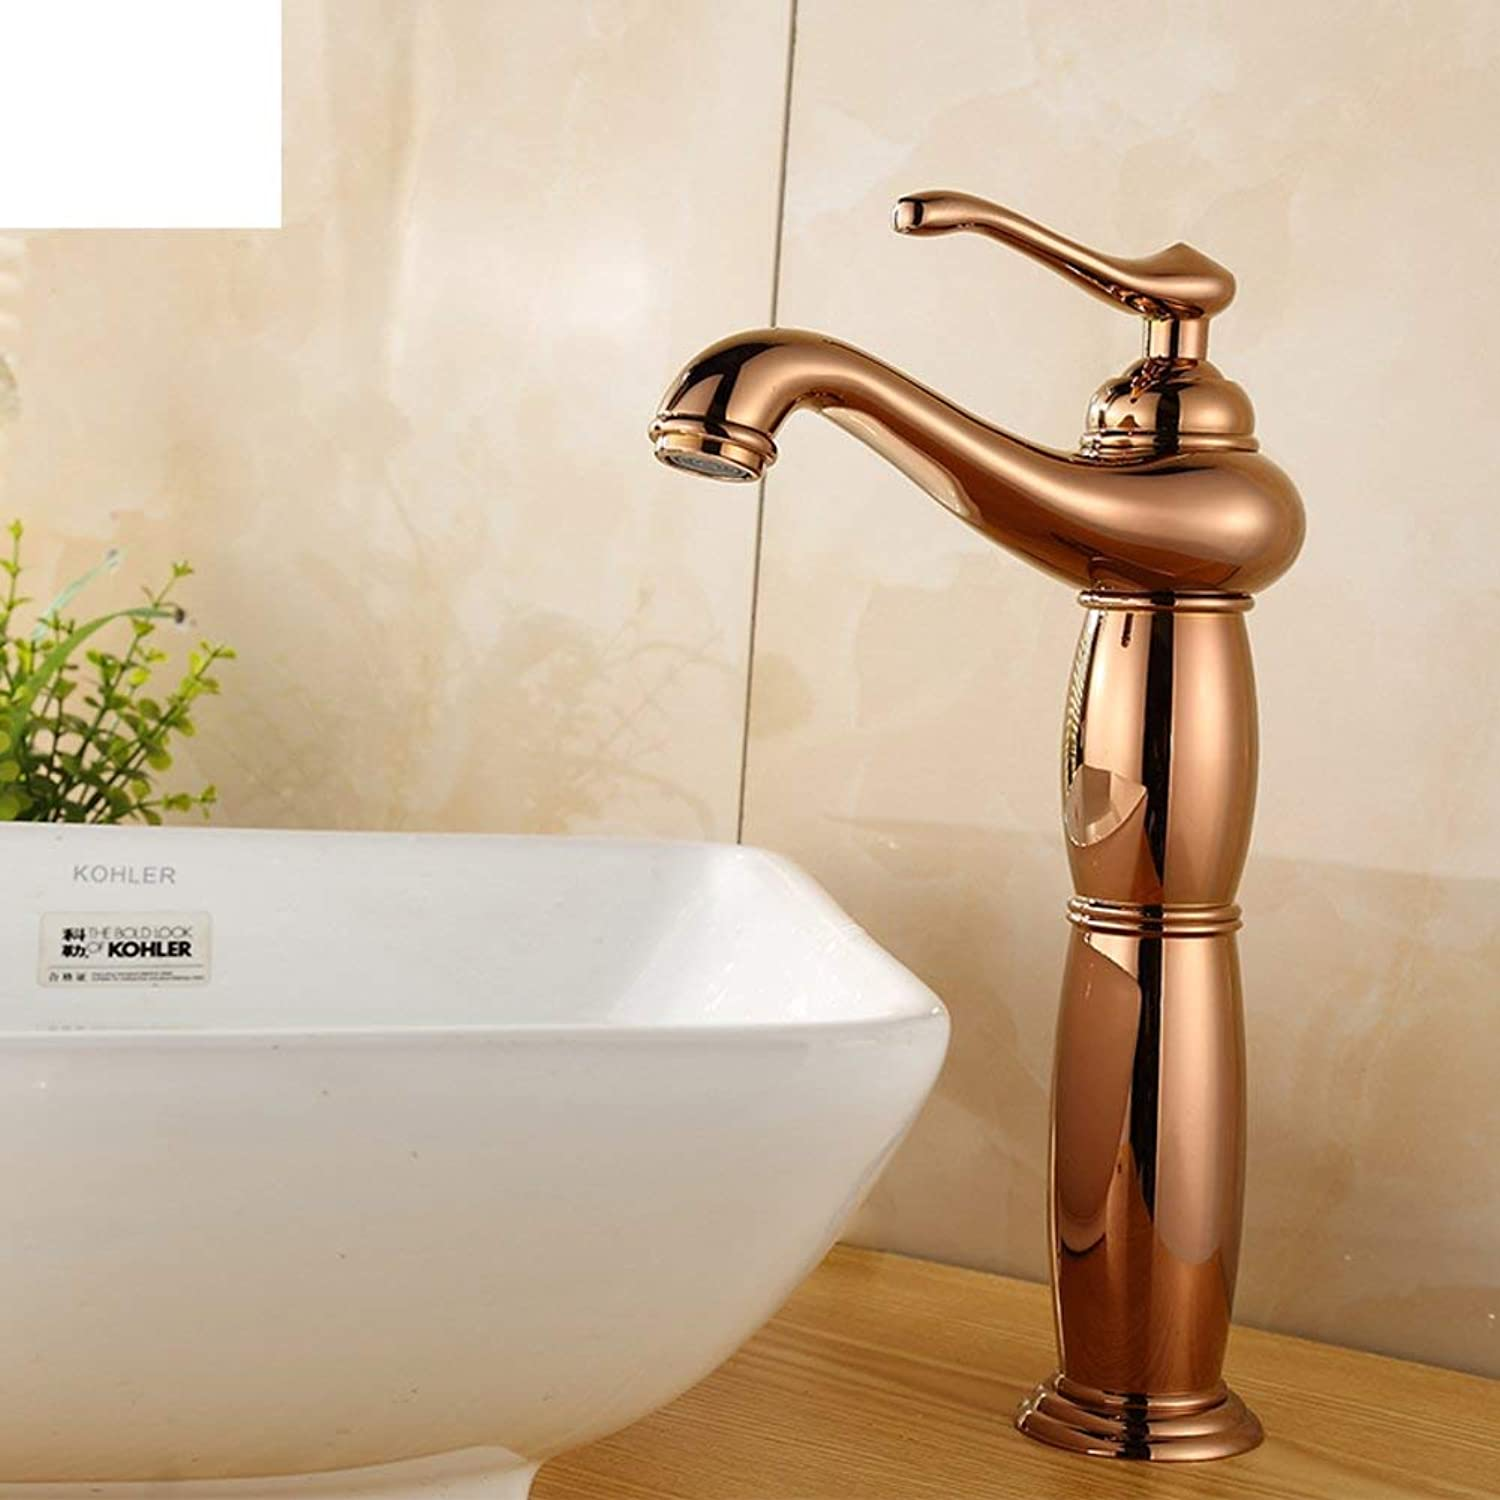 Oudan European antique copper faucet full pink gold Full copper basin mixer Antique basin faucet on stage (color   -, Size   -)